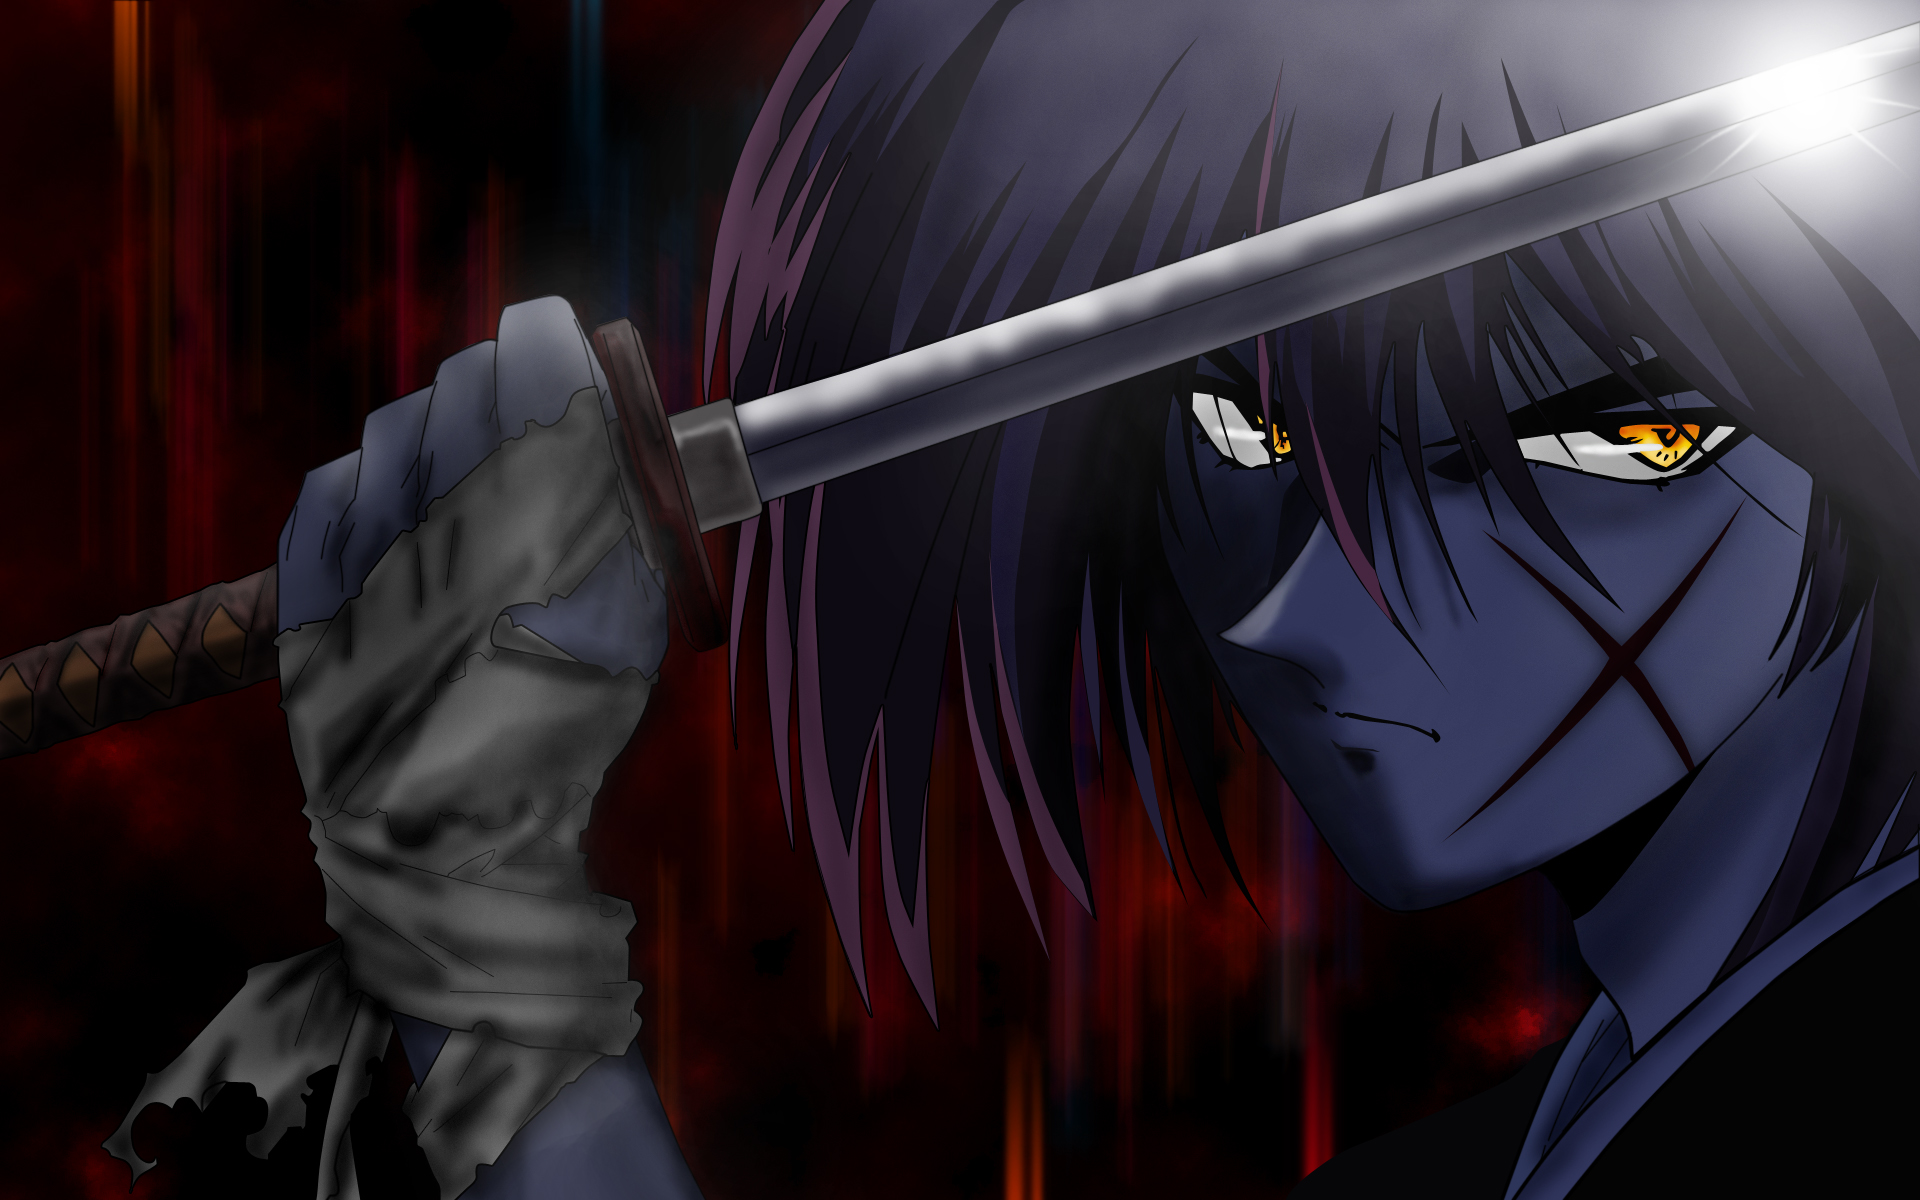 43 ] Rurouni Kenshin Wallpaper HD On WallpaperSafari